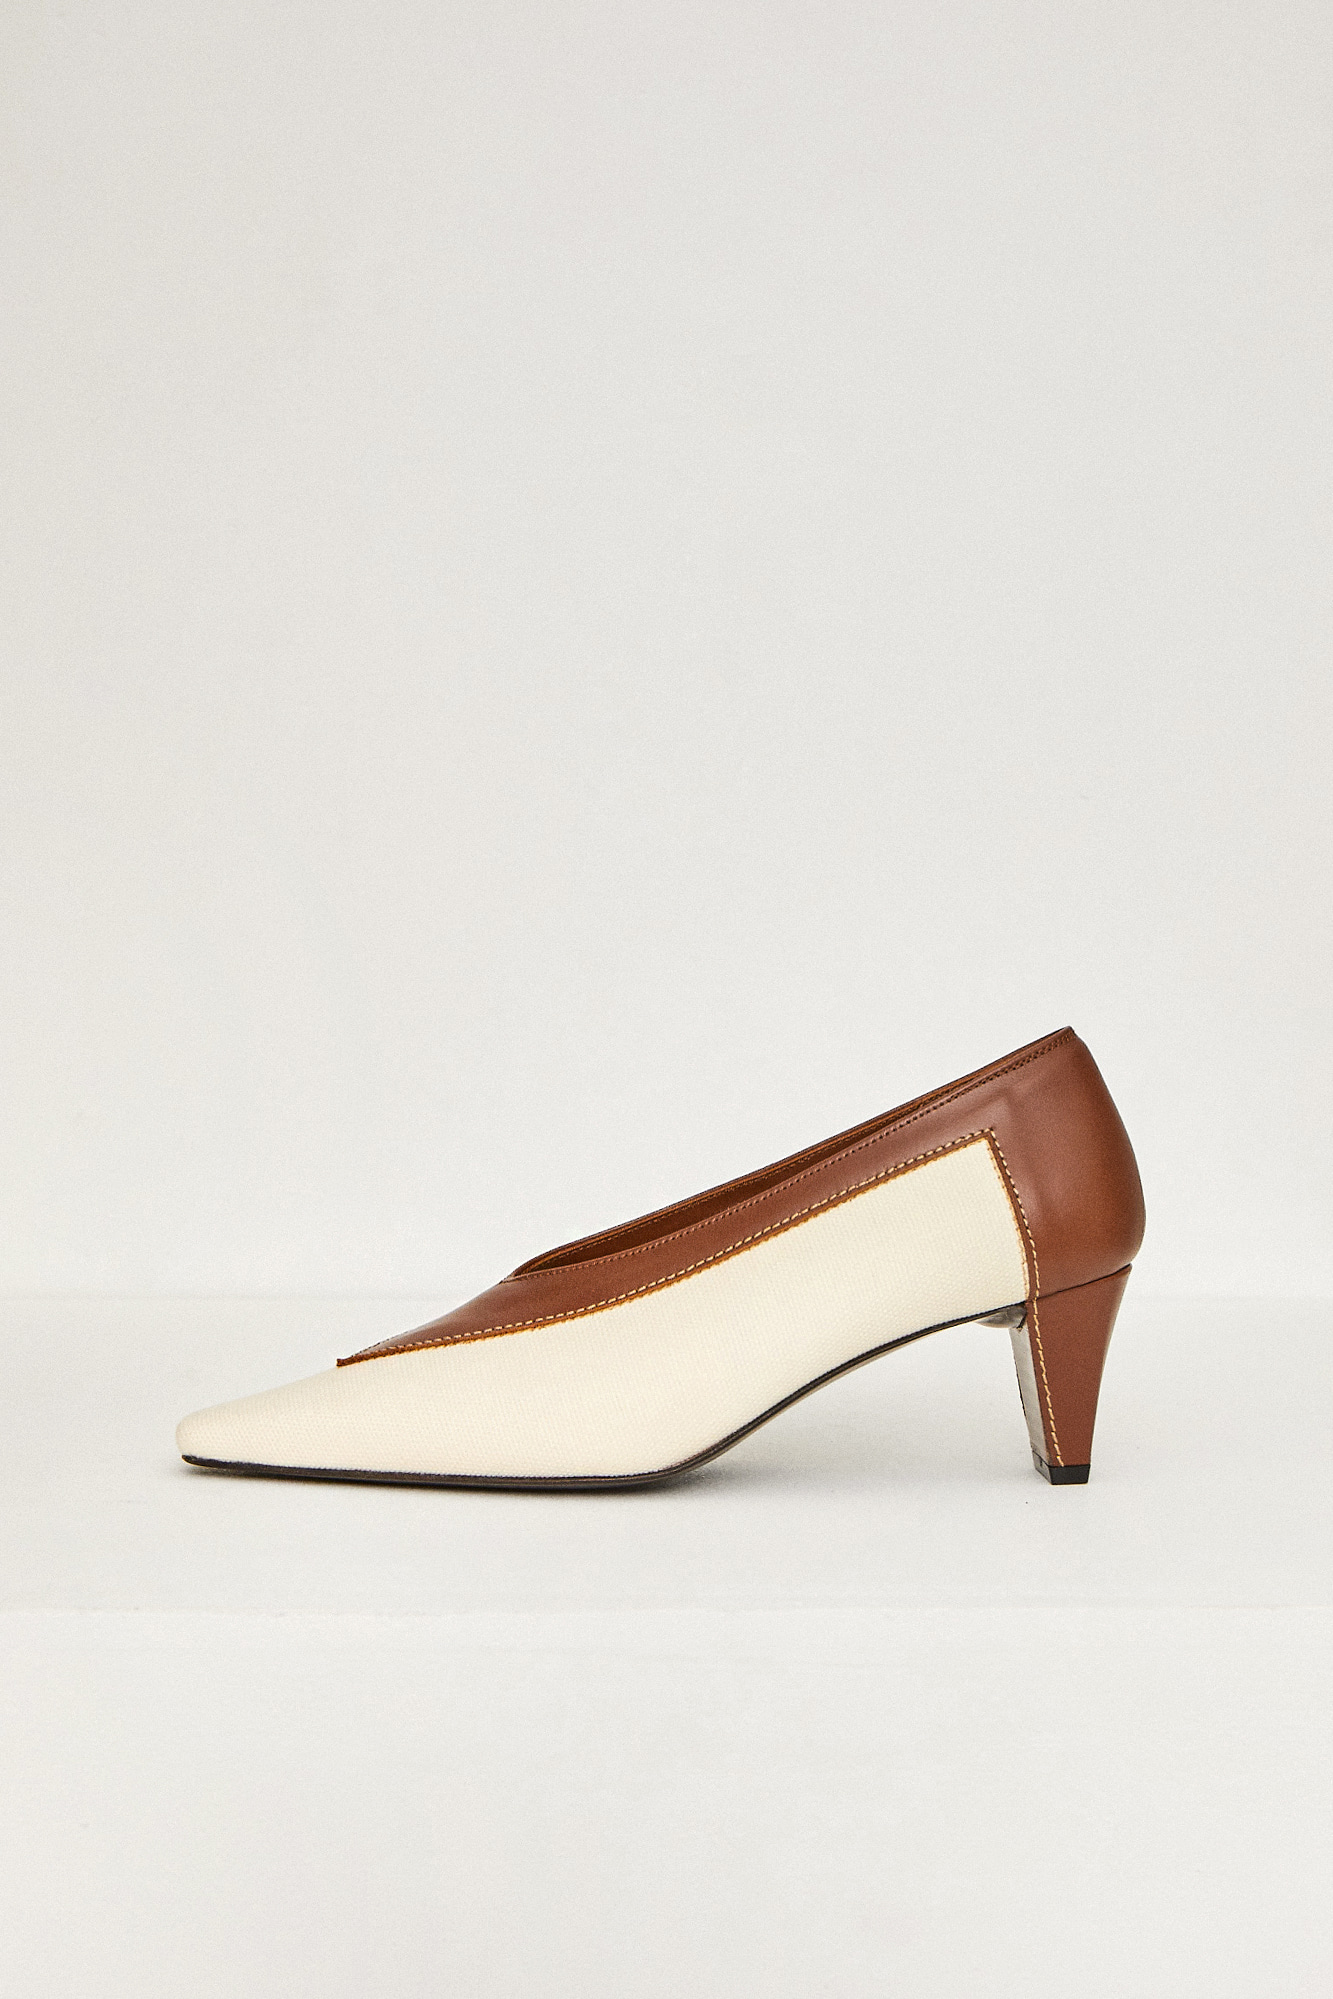 19FW COLOR BLOCK SHOES - BROWN